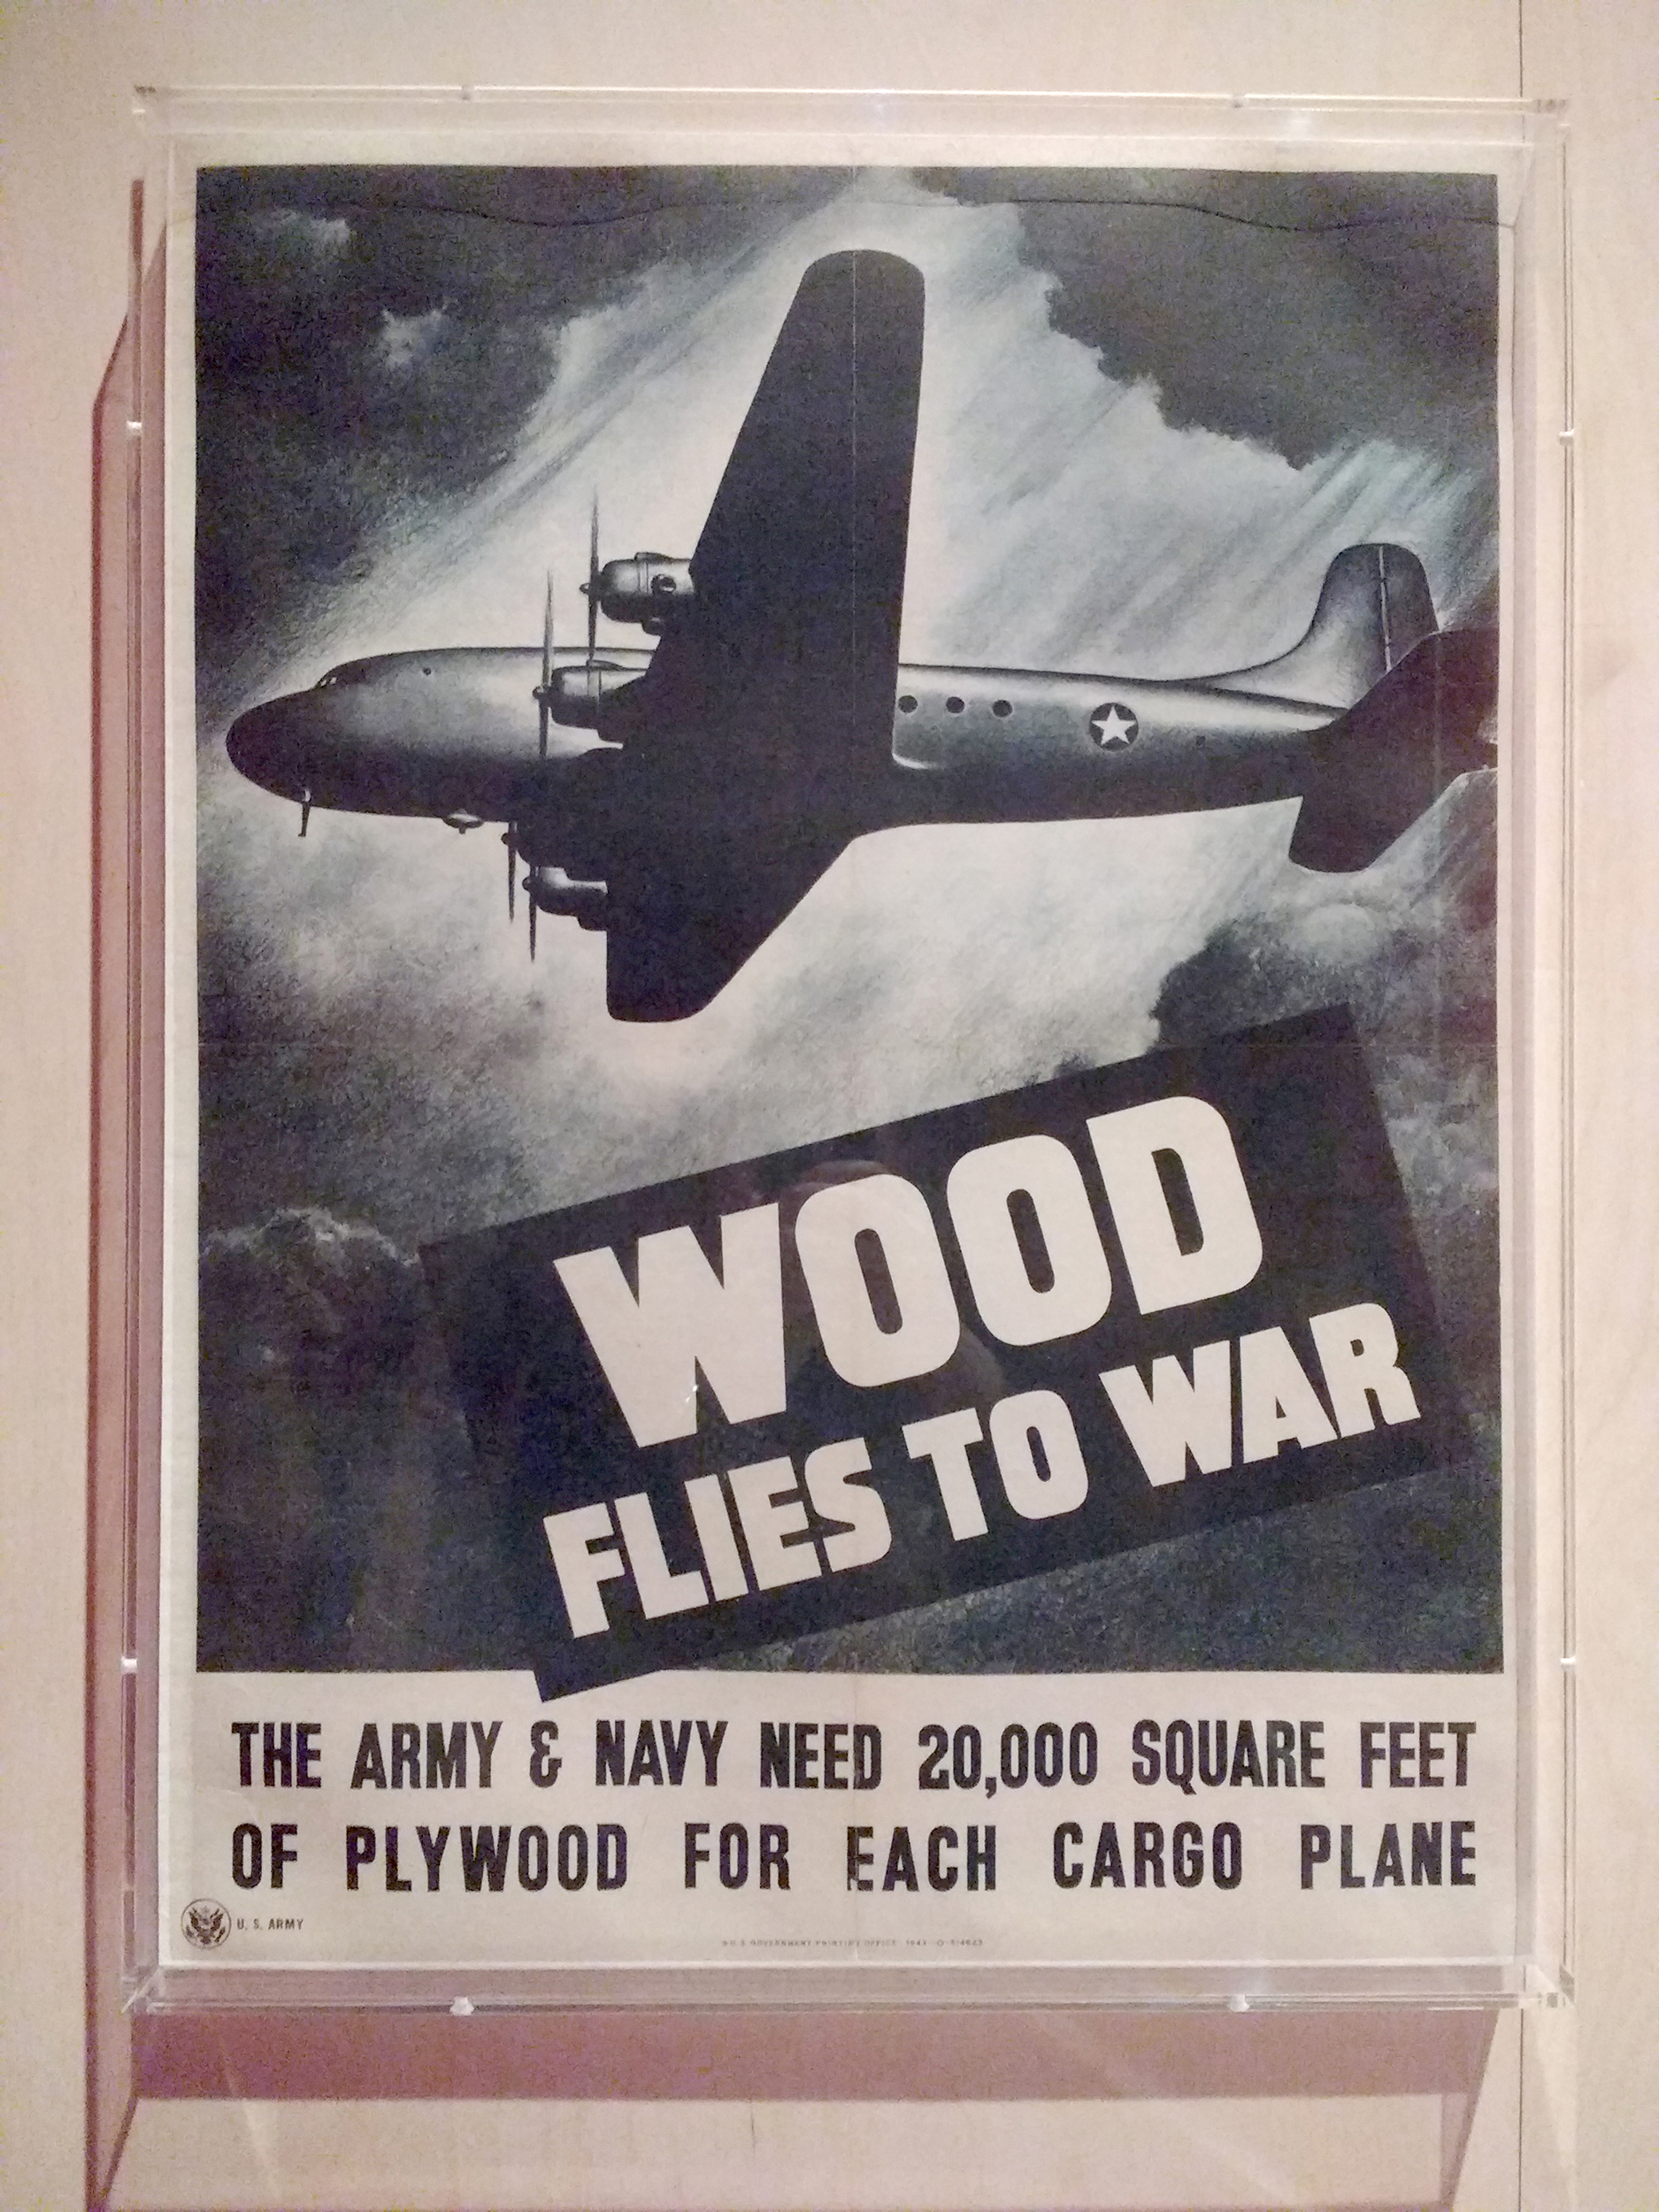 'Wood flies to war' poster, 1943, Designed for the US Army Bureau of Public Relations